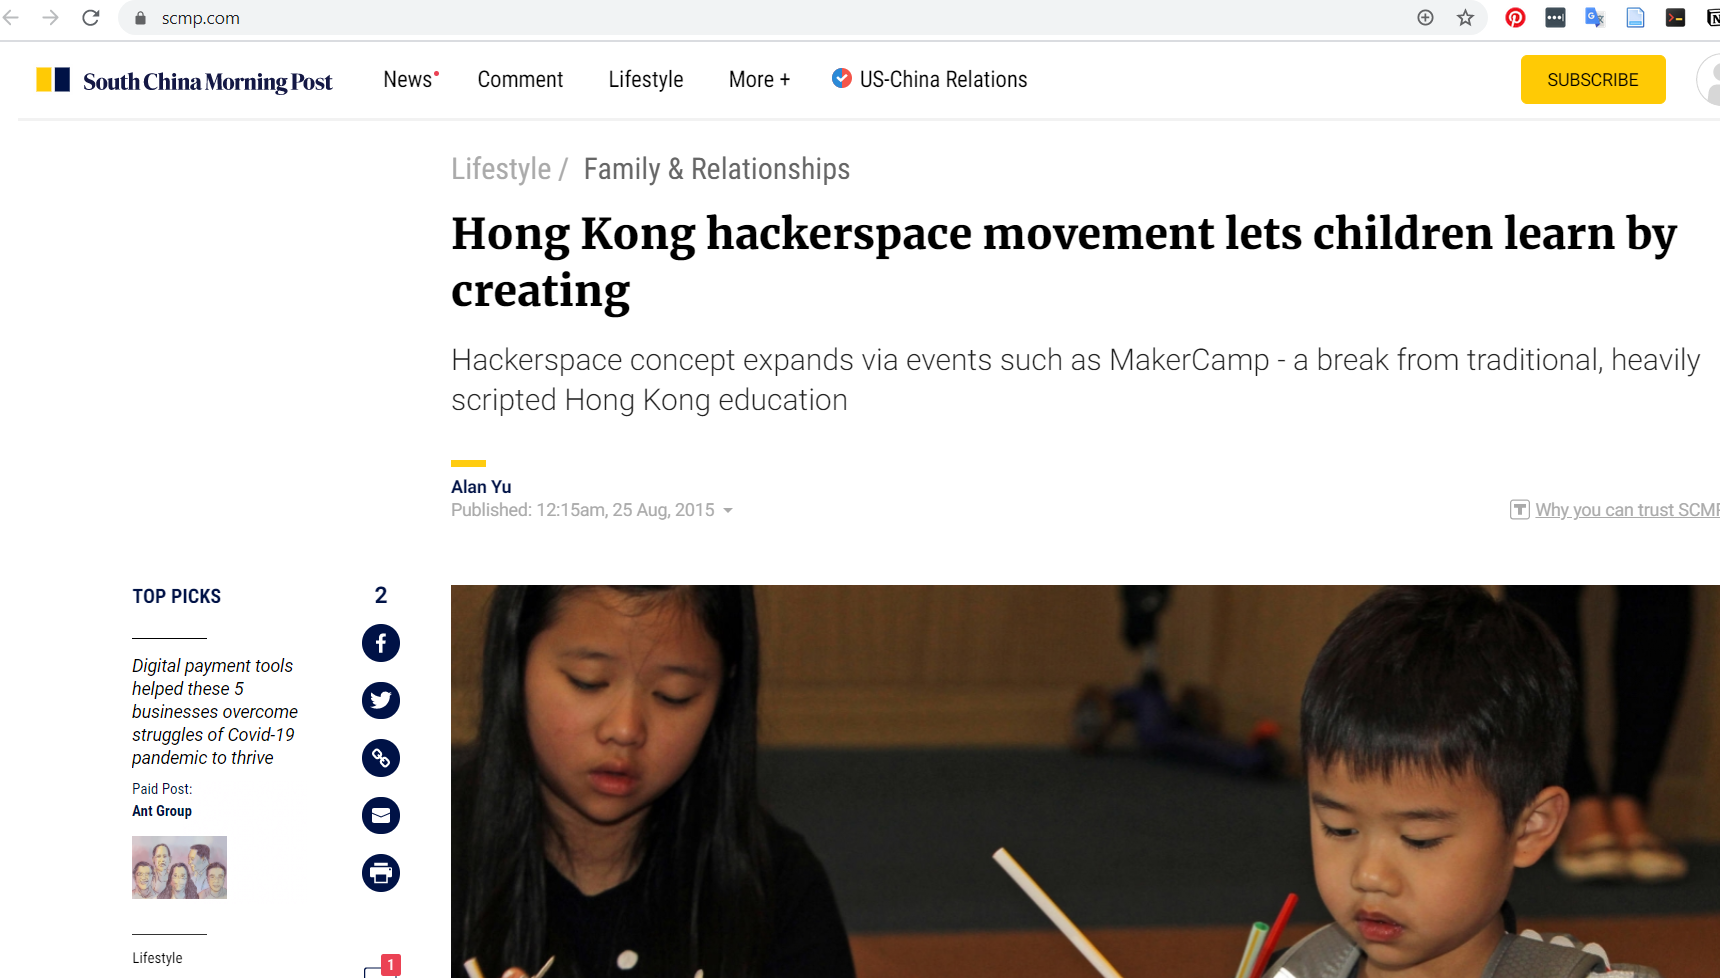 Hong Kong hackerspace movement lets children learn by creating